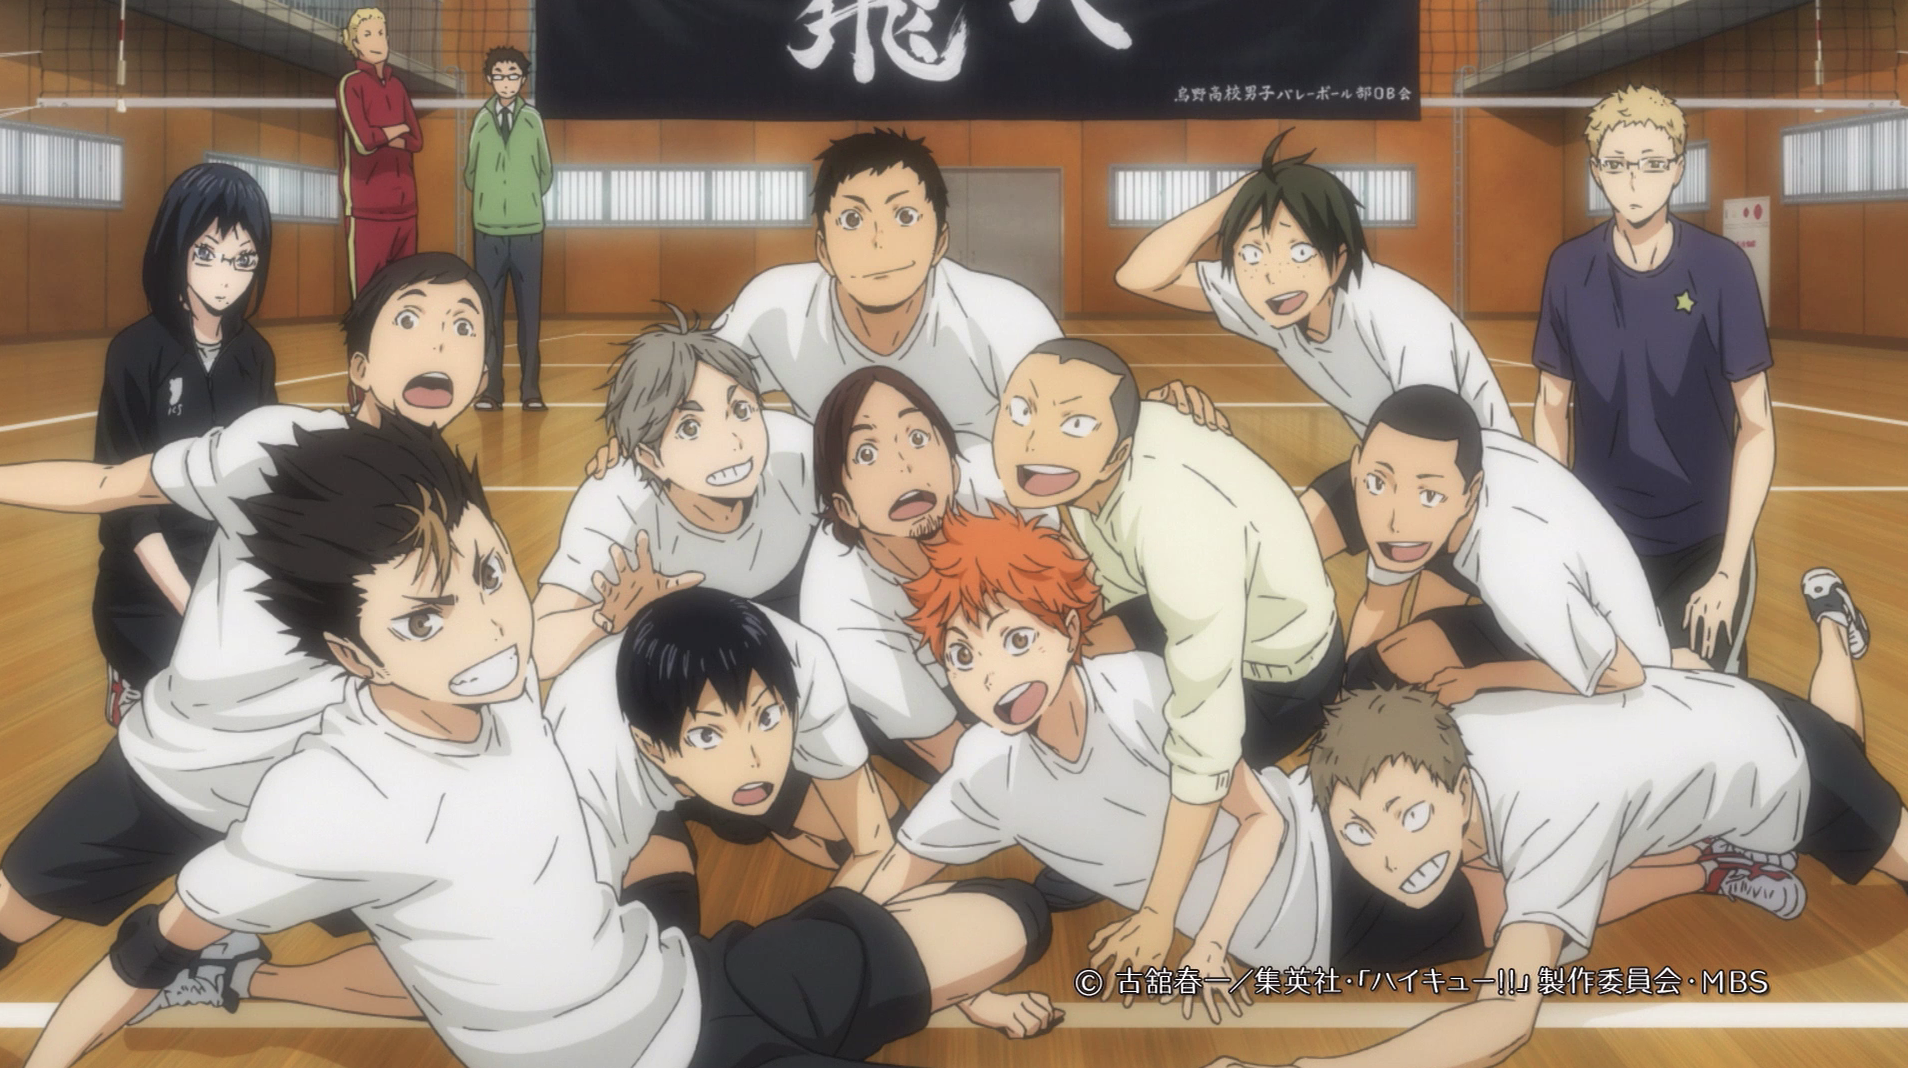 Karasuno's volleyball team huddling together on the floor while in the gym